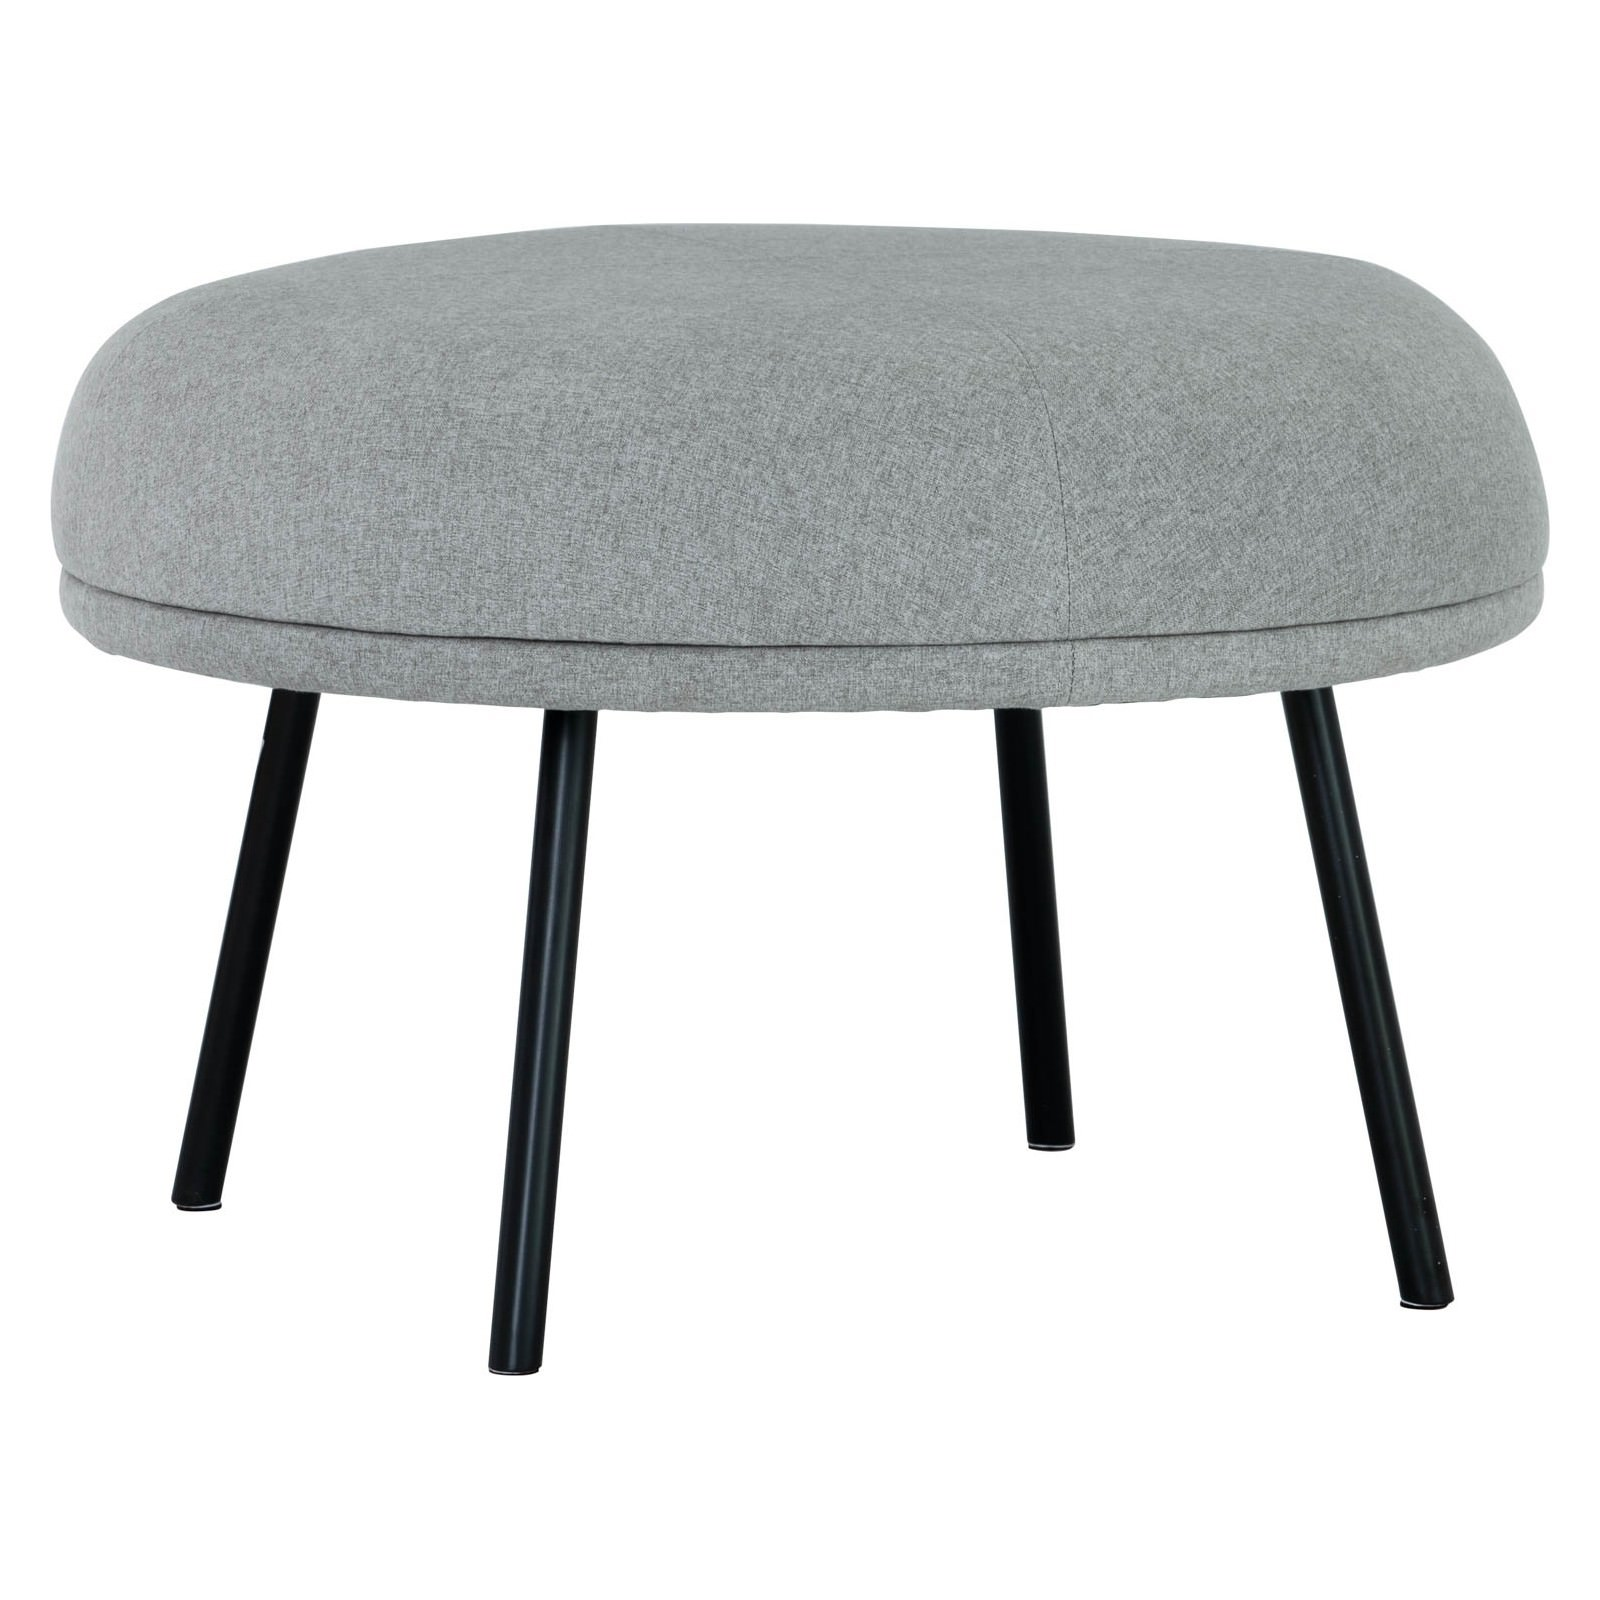 Justy Commercial Grade Fabric Round Footstool, Pale Grey